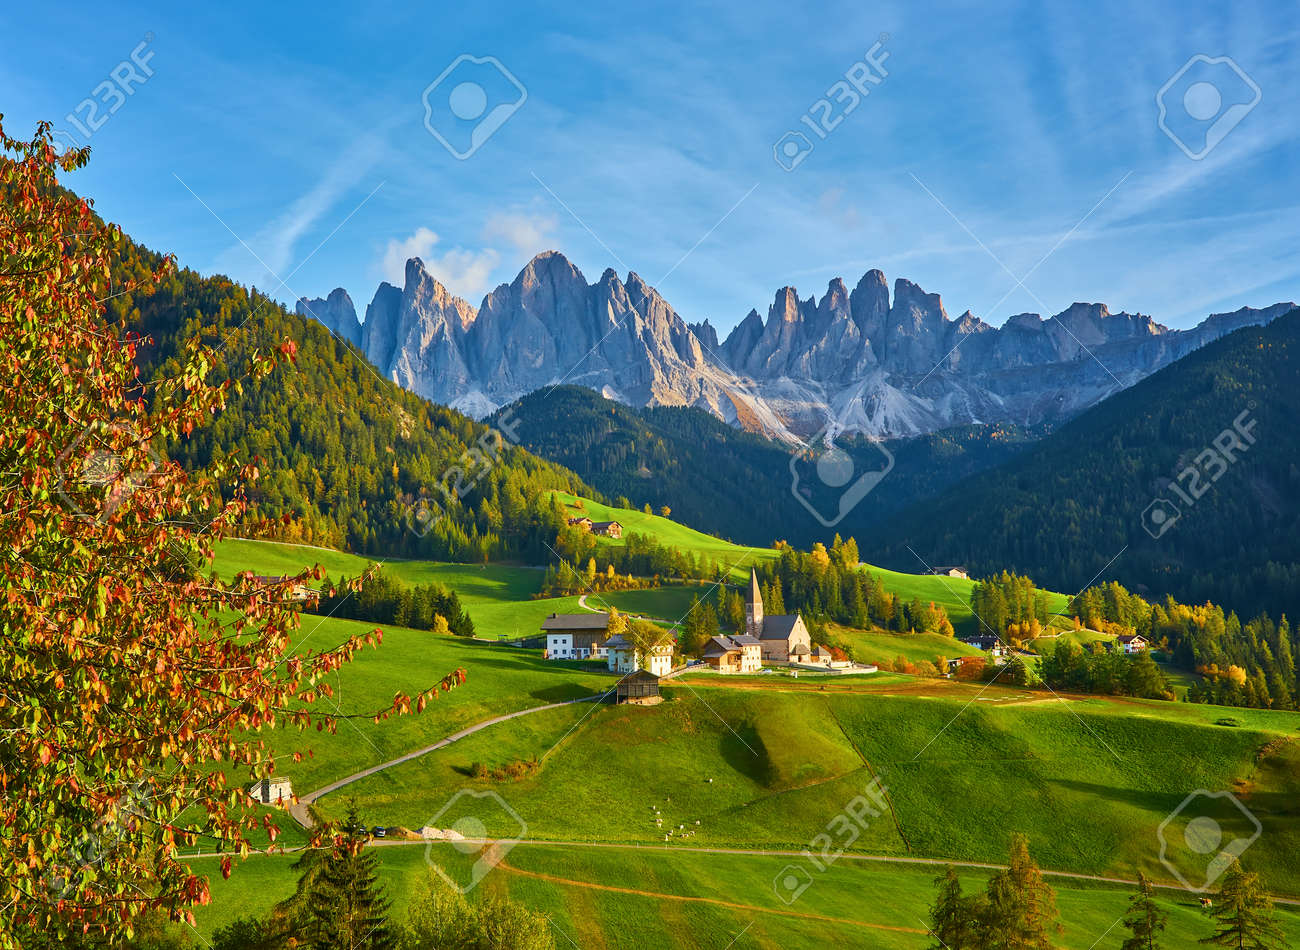 Famous best alpine place of the world, Santa Maddalena village with magical Dolomites mountains in background, Val di Funes valley, Trentino Alto Adige region, Italy, Europe - 173011257